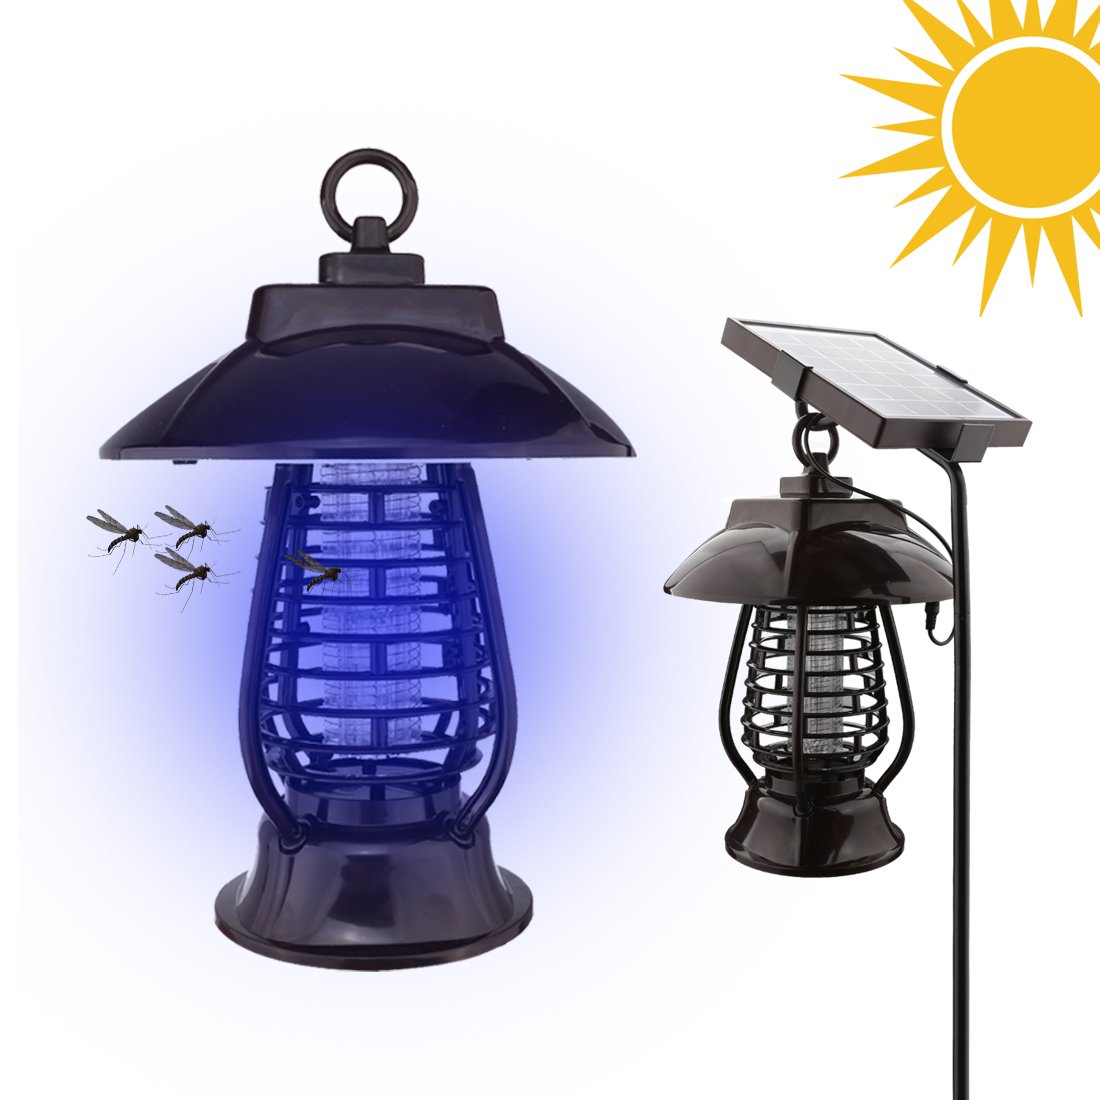 A-SZCXTOP Energy-saving Solar Mosquito-killer LED Light Insect / Mosquito/ Flying Killer Mute Lamp 2 Lighting Modes Portable Bug Zapper Light with Waterproof Design Home Office Camping Garden Lawn